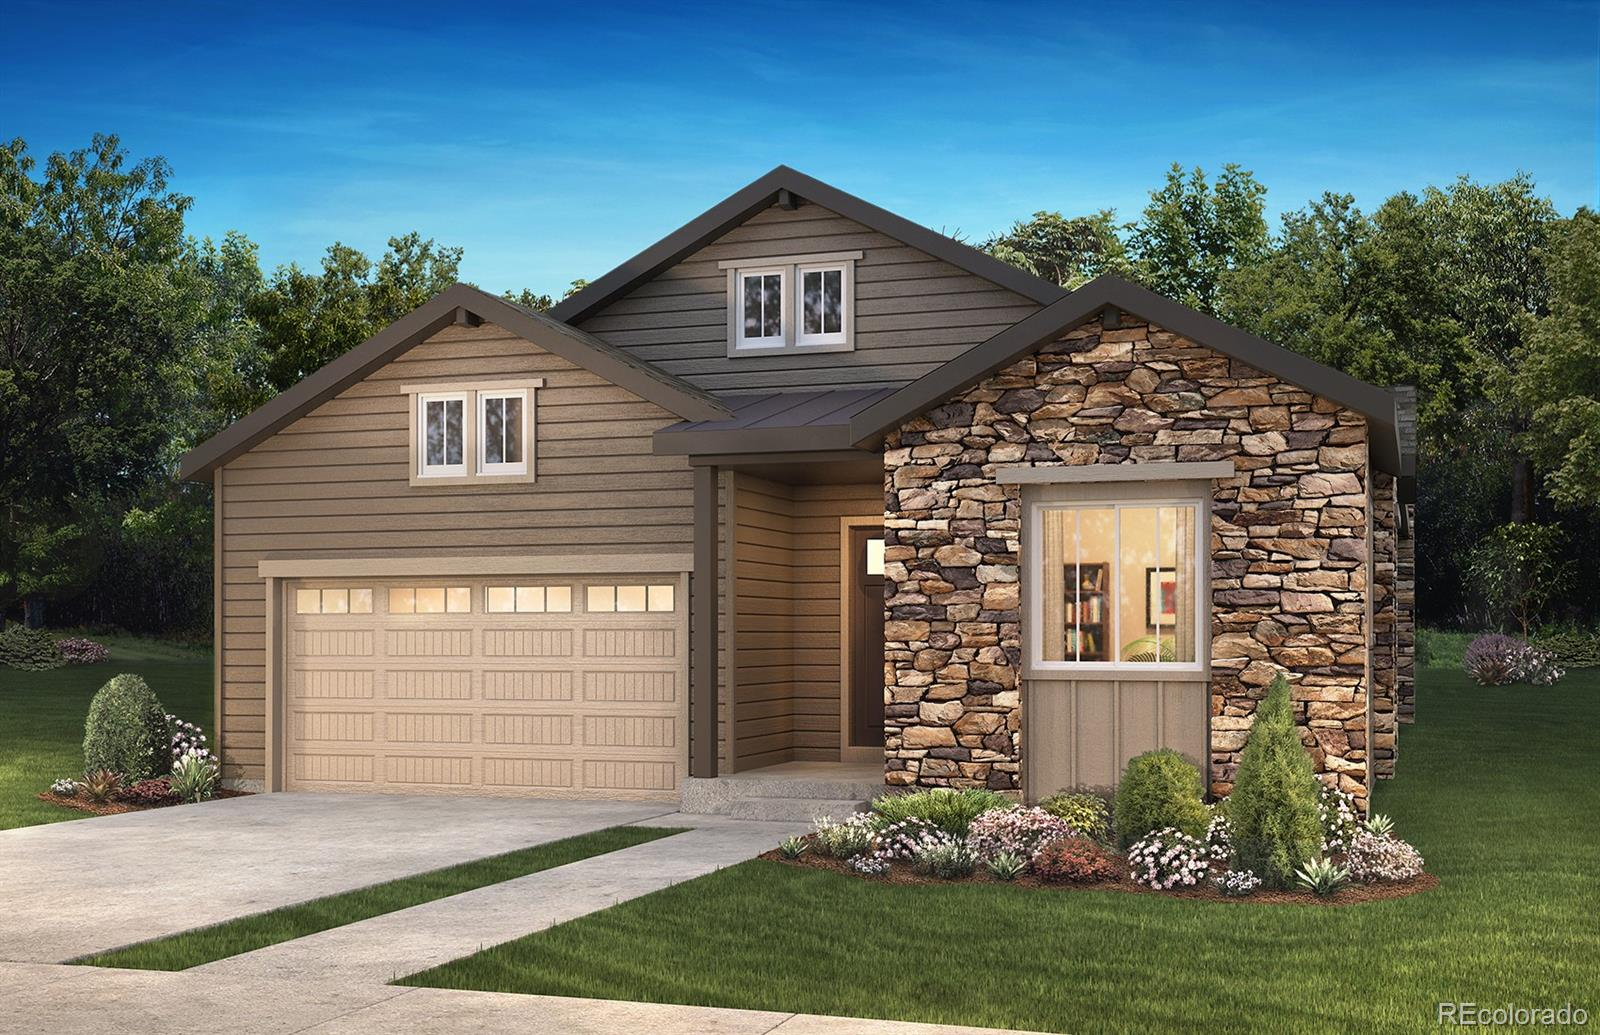 """Available April 2020. This stunning Avery ranch plan in The Canyons features 3 beds, 3 baths, great room, kitchen, dining room, study, unfinished basement for future expansion and 2 car garage.  Design finishes and upgrades include 36"""" GE Monogram™ stainless steel gas appliances, Evoke Blaire Vigor Oak wood-style laminate flooring, MSI Concerto quartz slab kitchen counters with a full tile backsplash, MSI Concerto quartz slab master bath counters, fireplace with full height 12x24 horizontal stagger tile and mantel at great room, Aristokraft® Brellin Purestyle White cabinetry, barn doors at master bath, laundry room with sink, Craftsman iron stair rails and more. This beautiful home thoughtfully combines elegance and luxury. Don't miss your opportunity. Welcome Home!"""